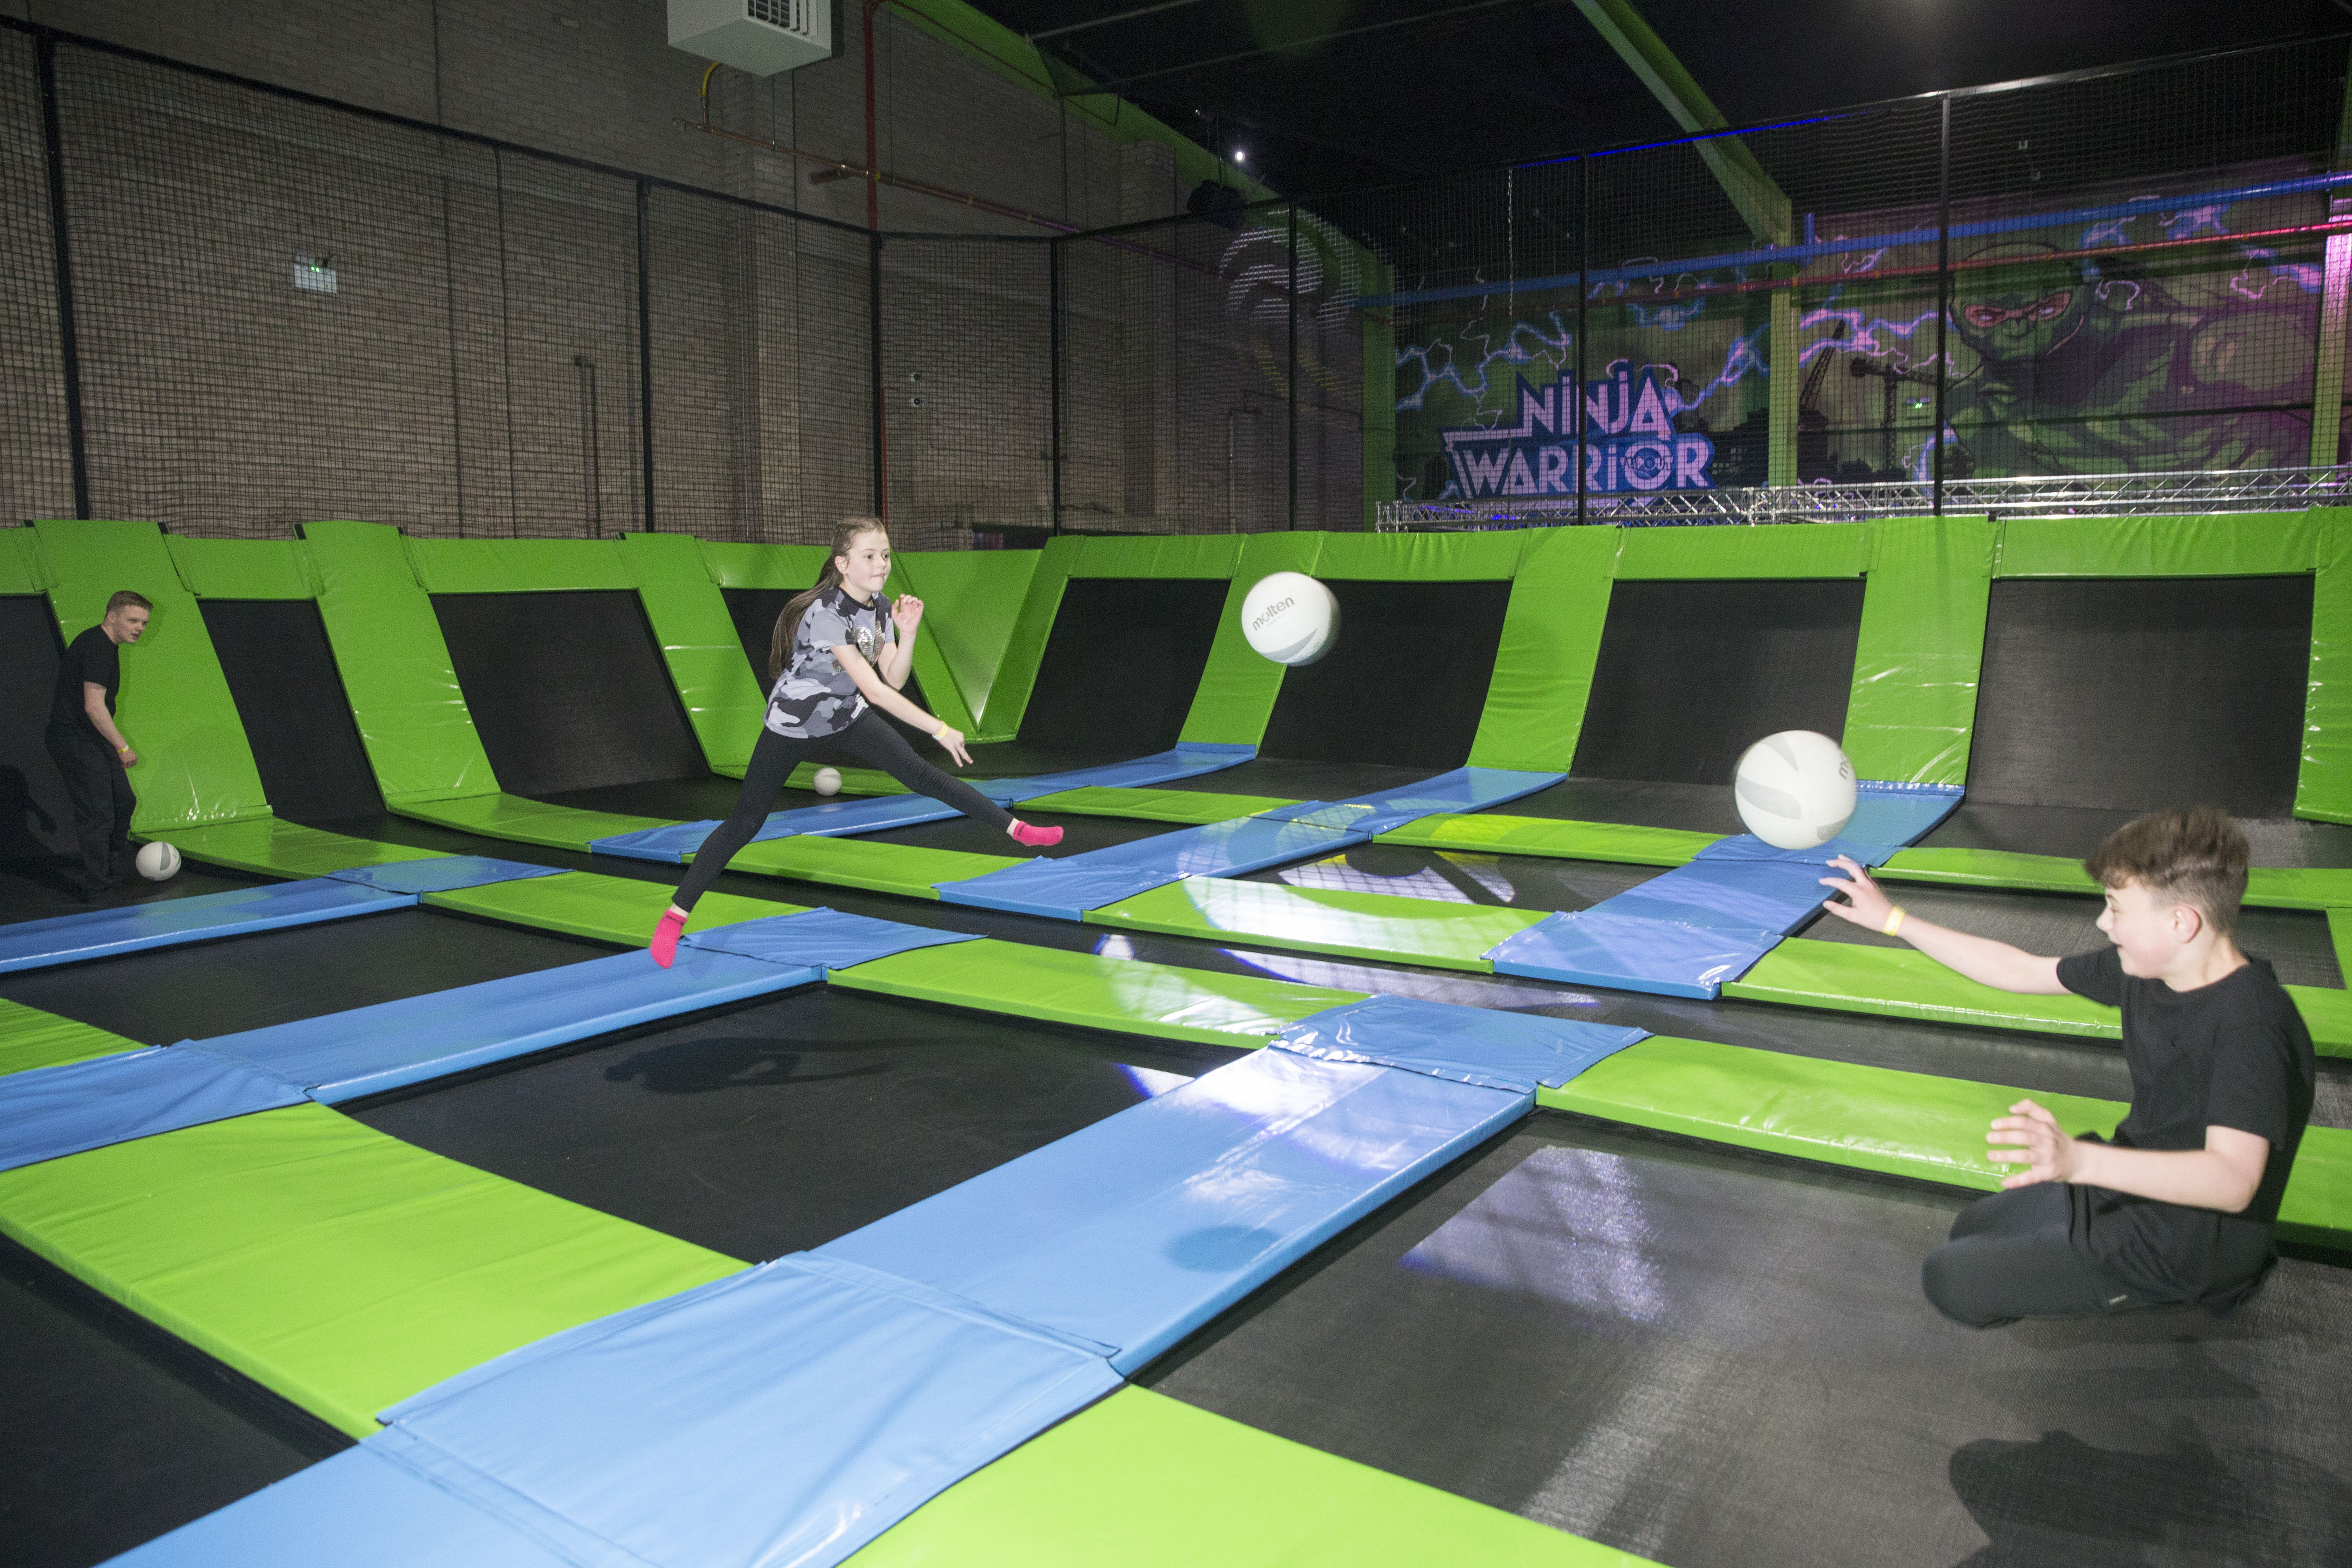 Children playing trampoline soccer